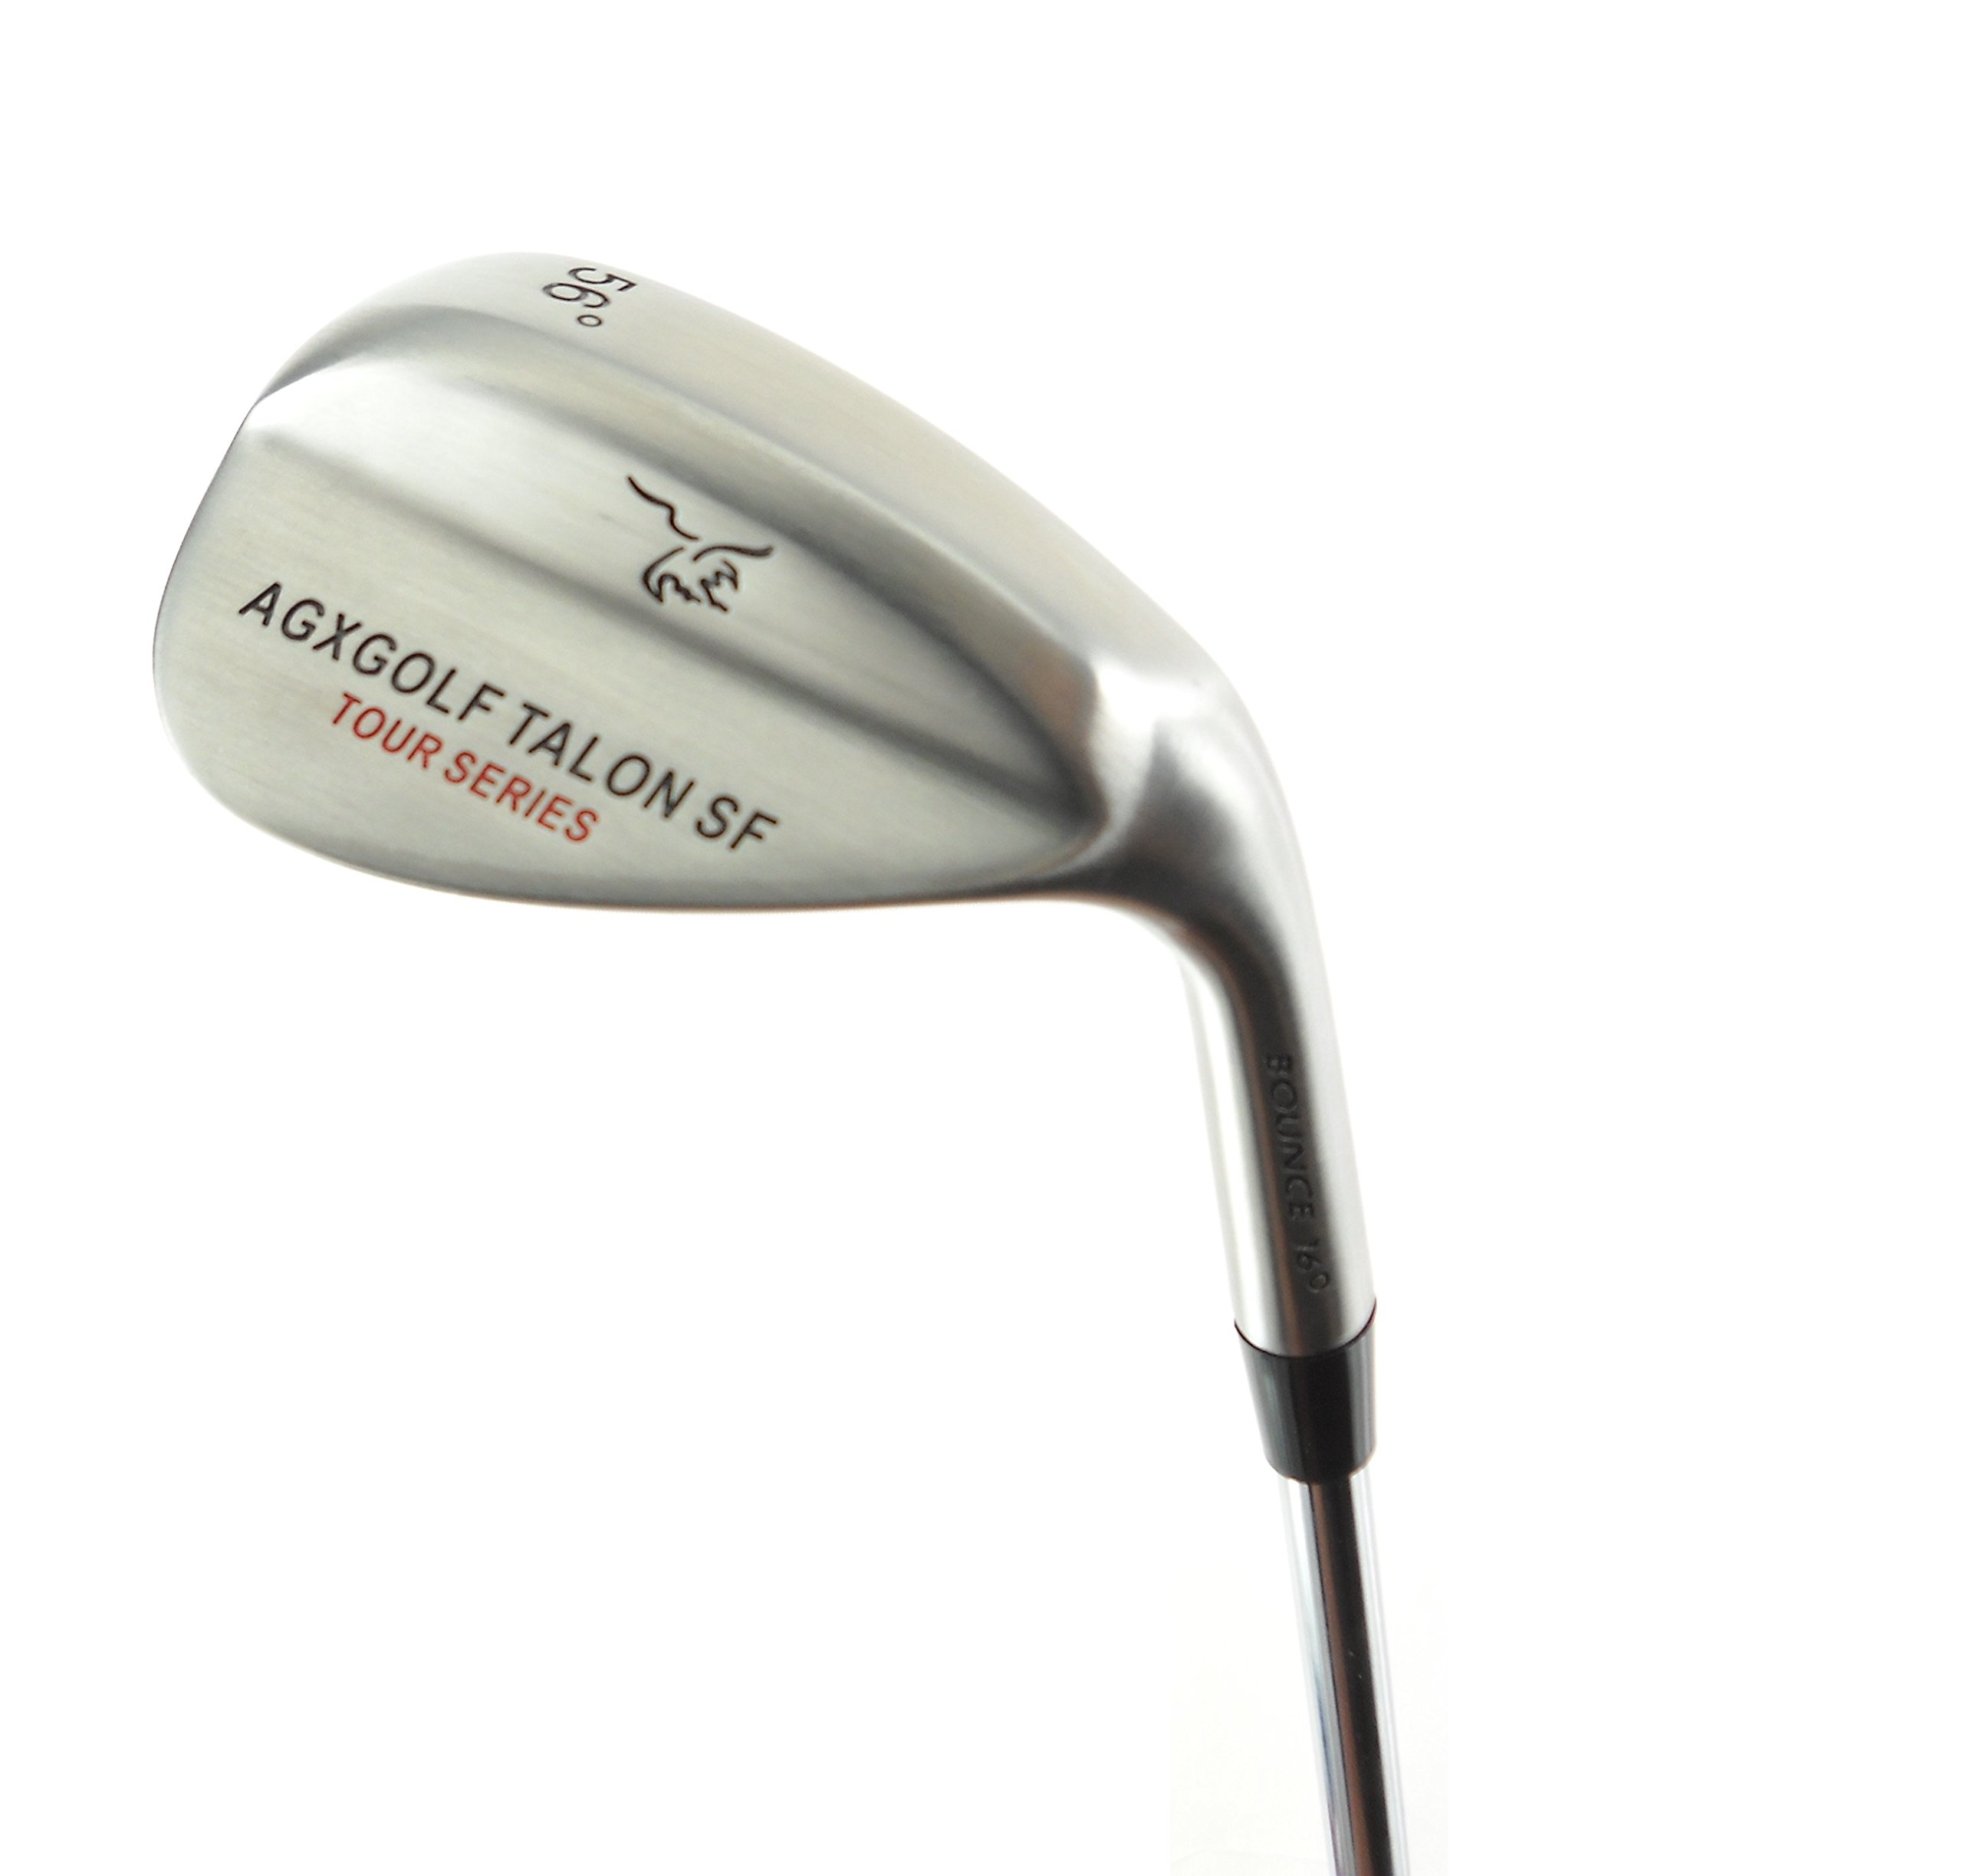 Tour Series Ladies Edition Sand Wedge; 56 Degree Right Hand Petite Length Built in the USA!